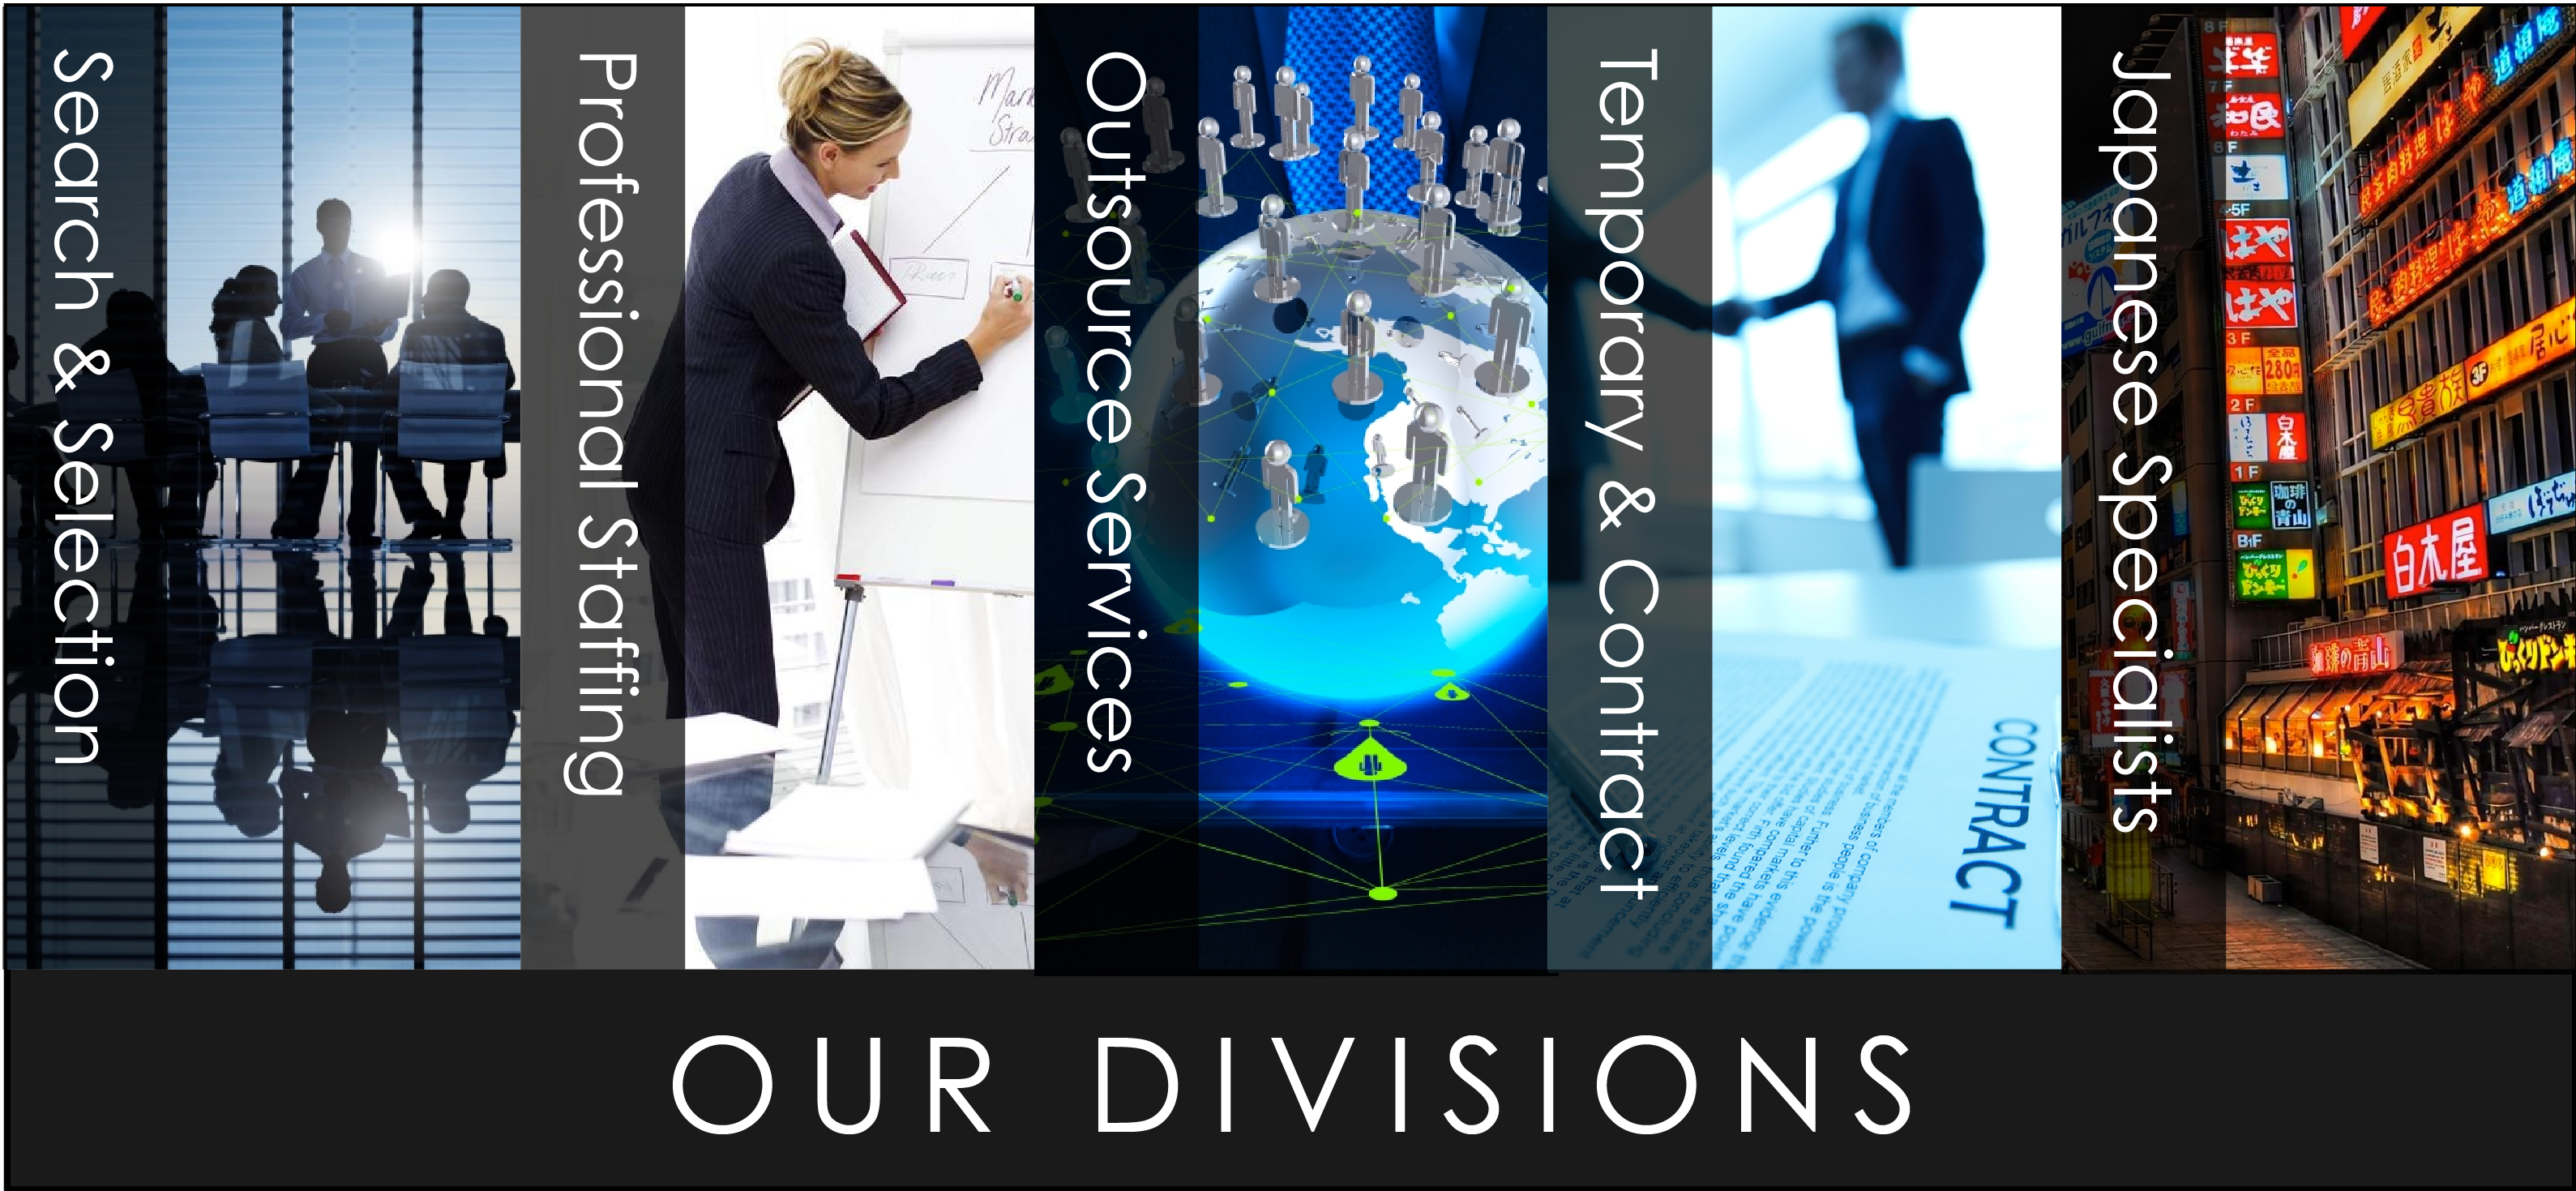 Our Divisions